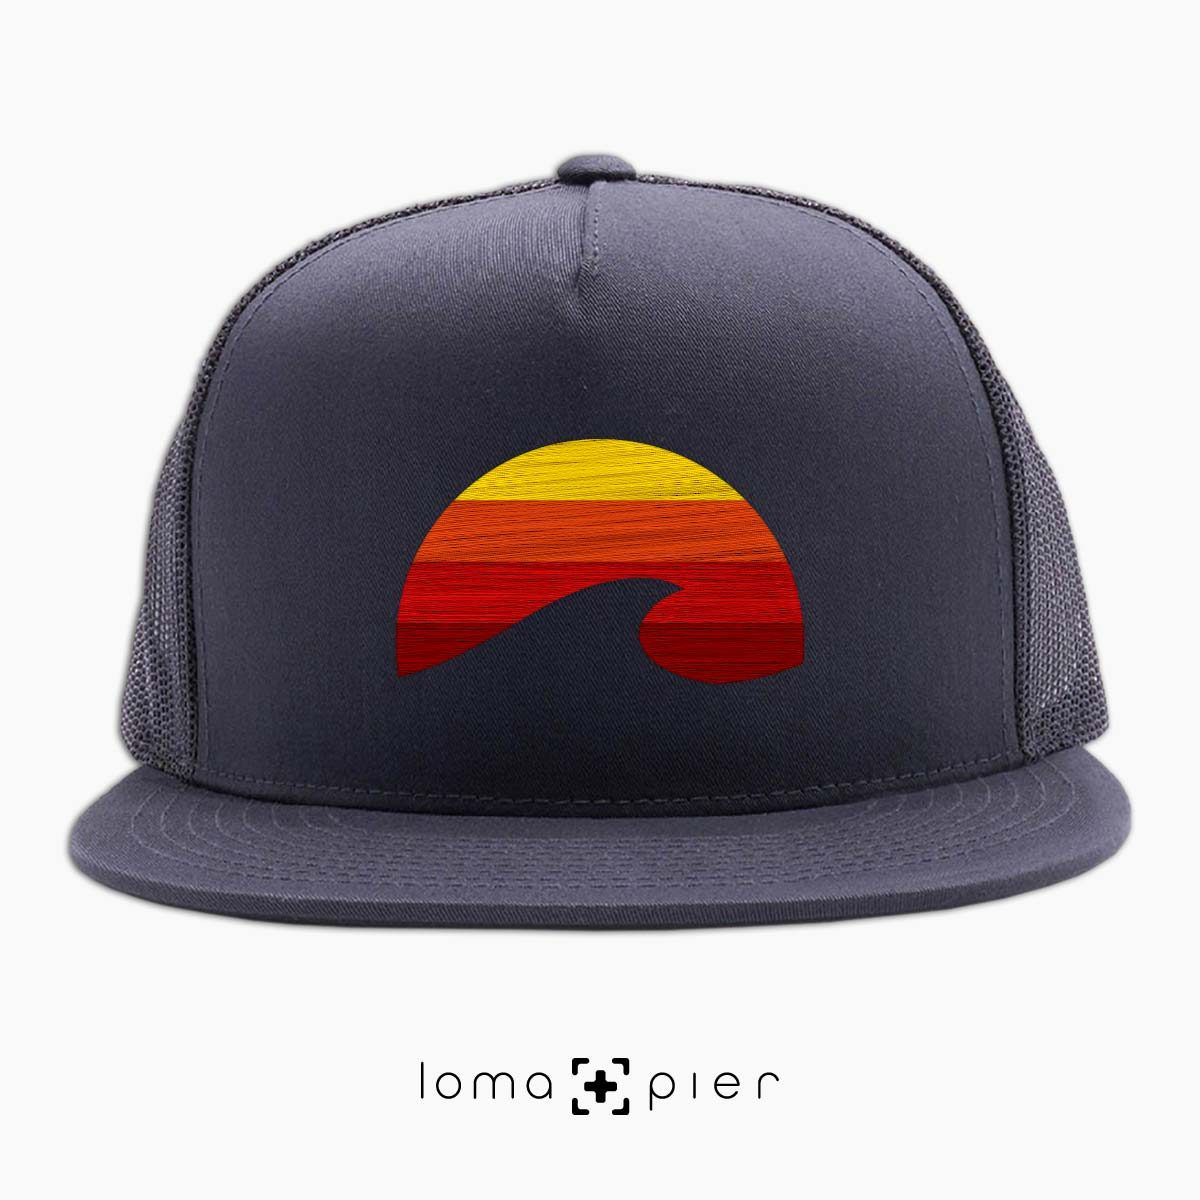 PACIFIC SUN manhattan beach netback hat in charcoal by loma+pier hat store